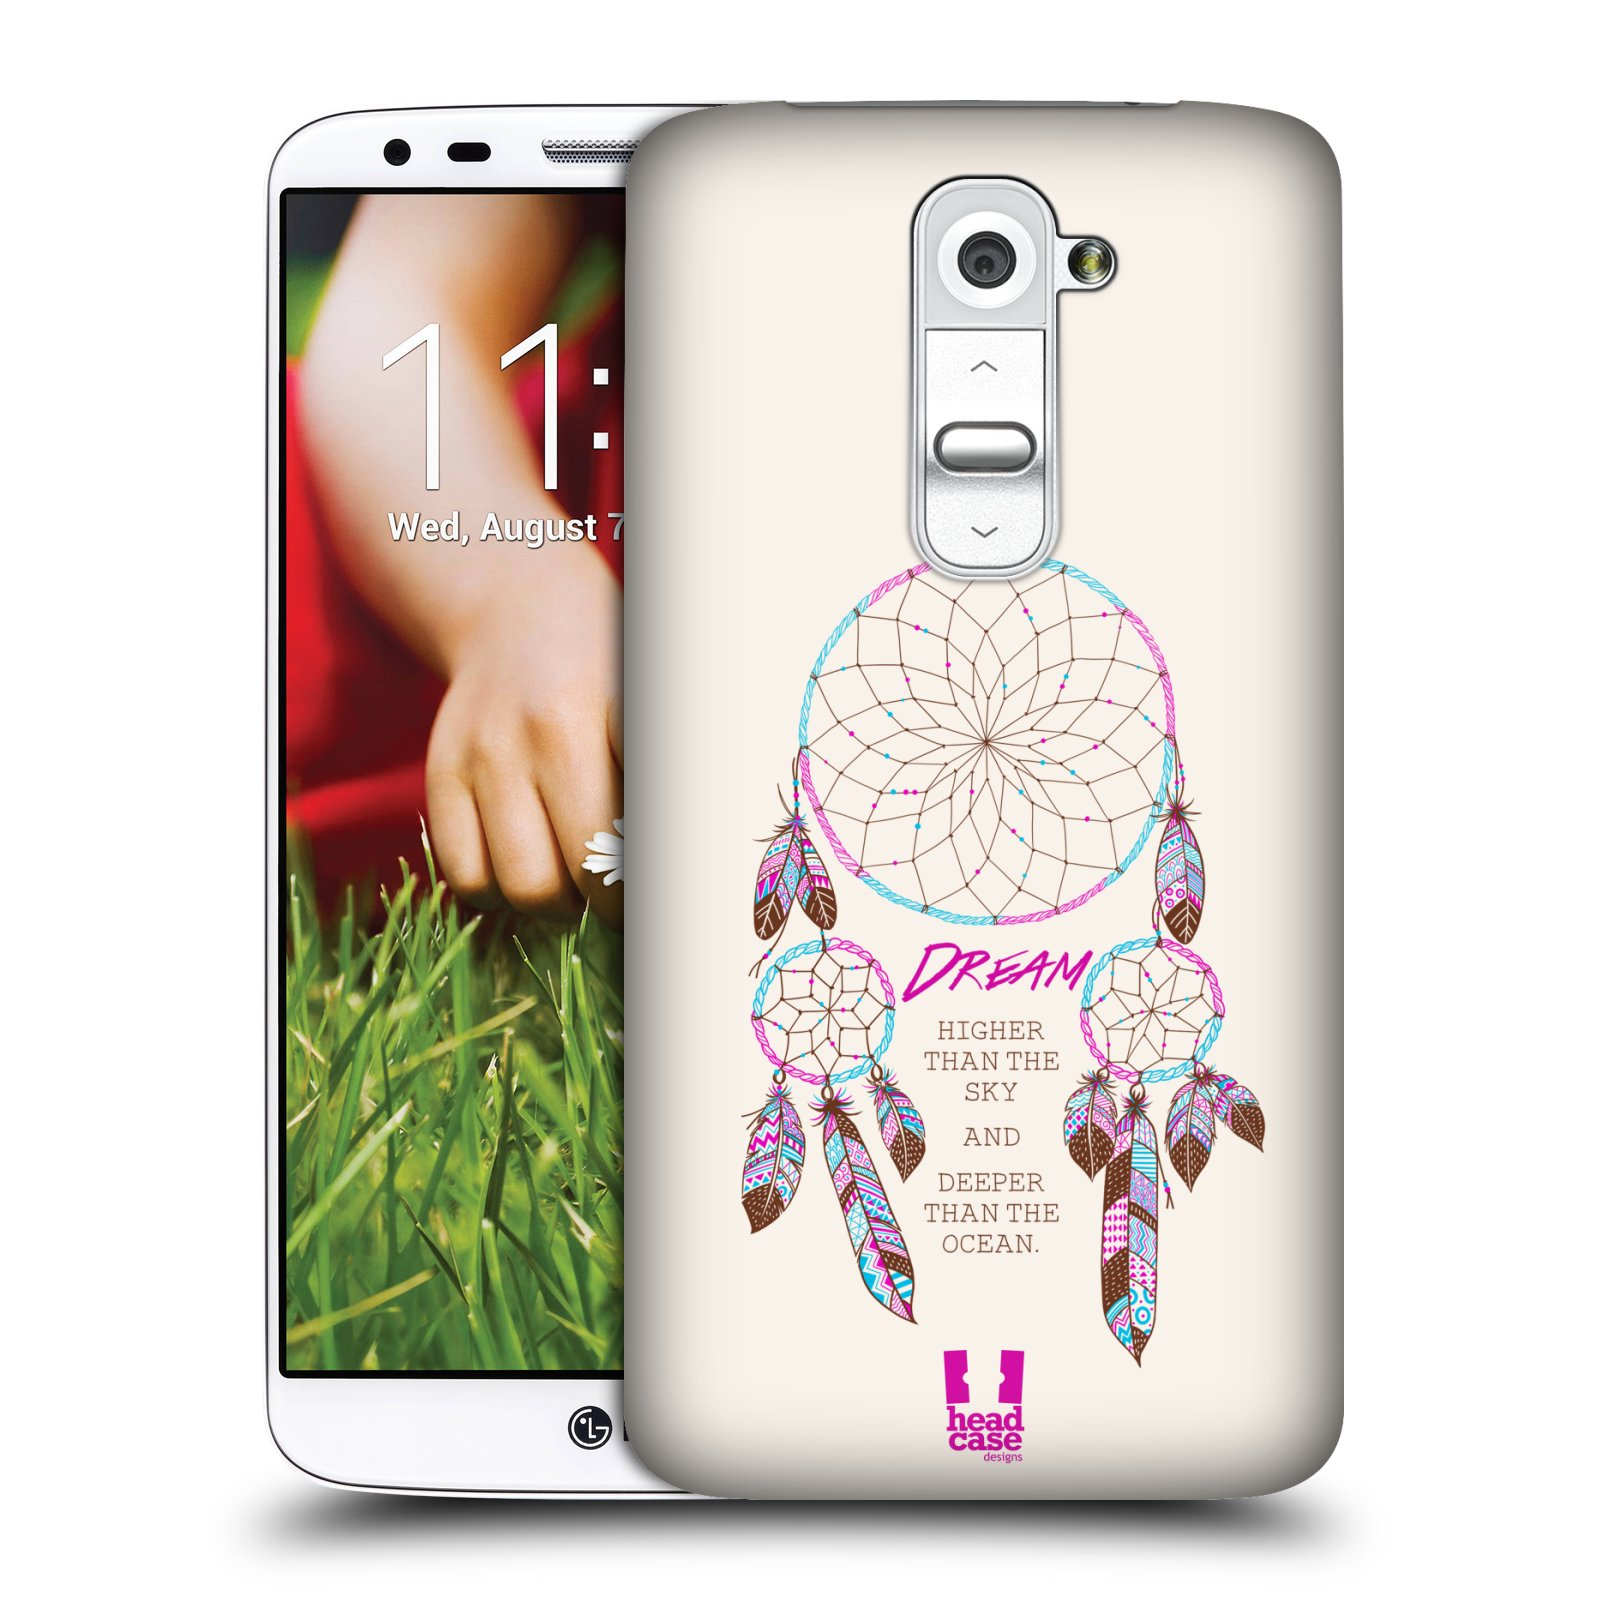 HEAD CASE DREAMCATCHERS SERIES 2 PROTECTIVE HARD BACK CASE COVER FOR LG G2 D802